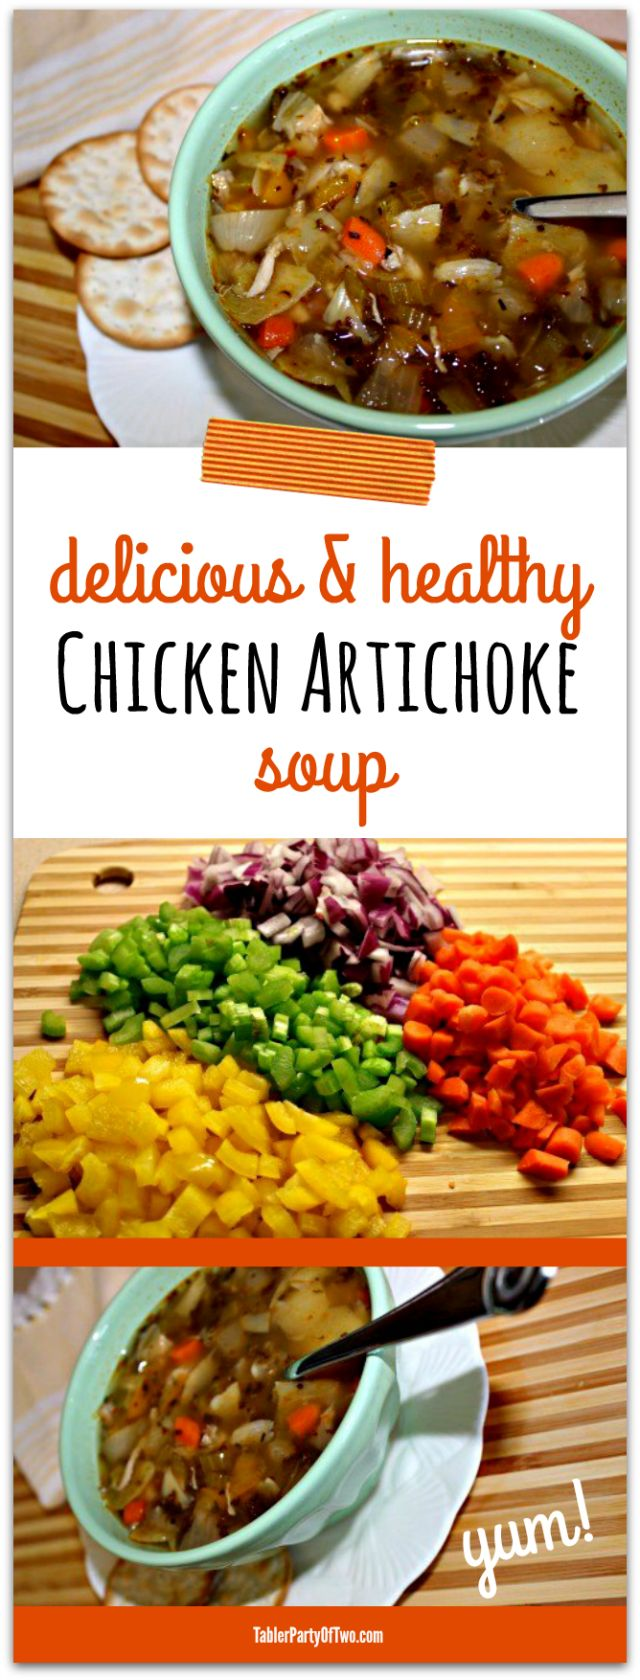 Delicious and healthy chicken artichoke soup... so amazingly yummy for cold winter days! TablerPartyofTwo.com